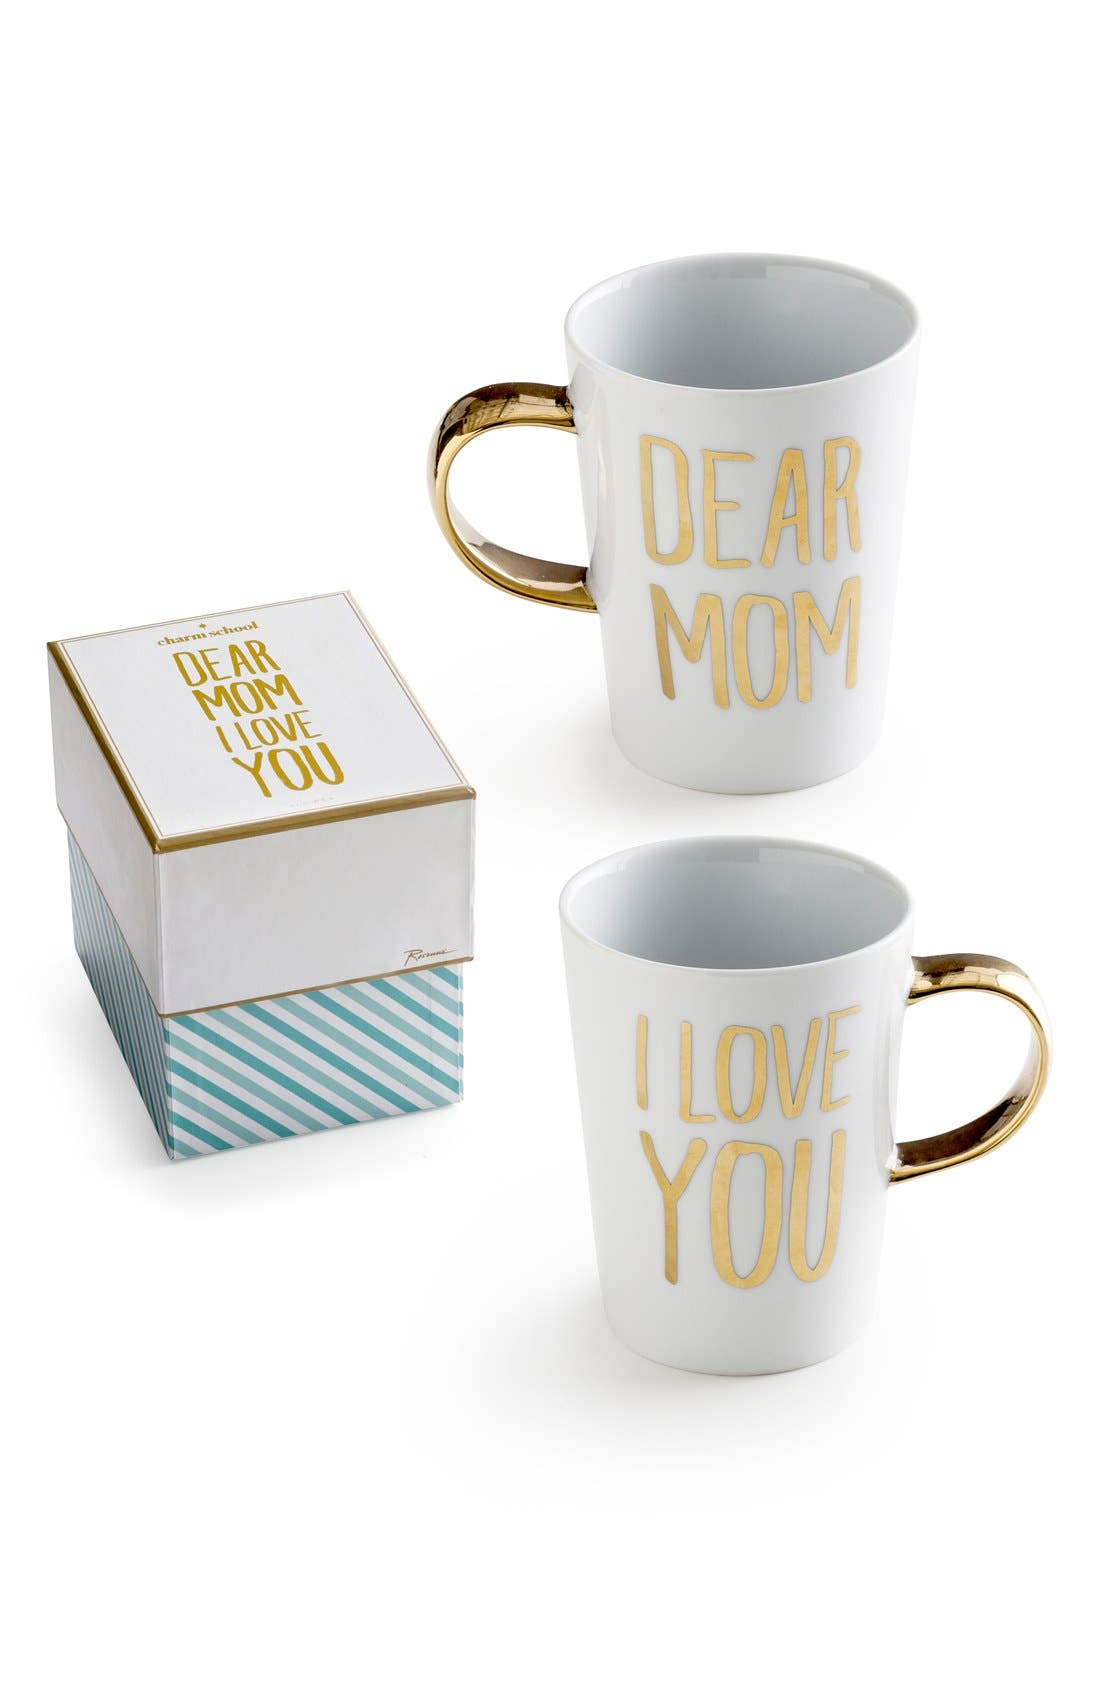 'Dear Mom I Love You' Porcelain Coffee Mug,                         Main,                         color, White/ Gold